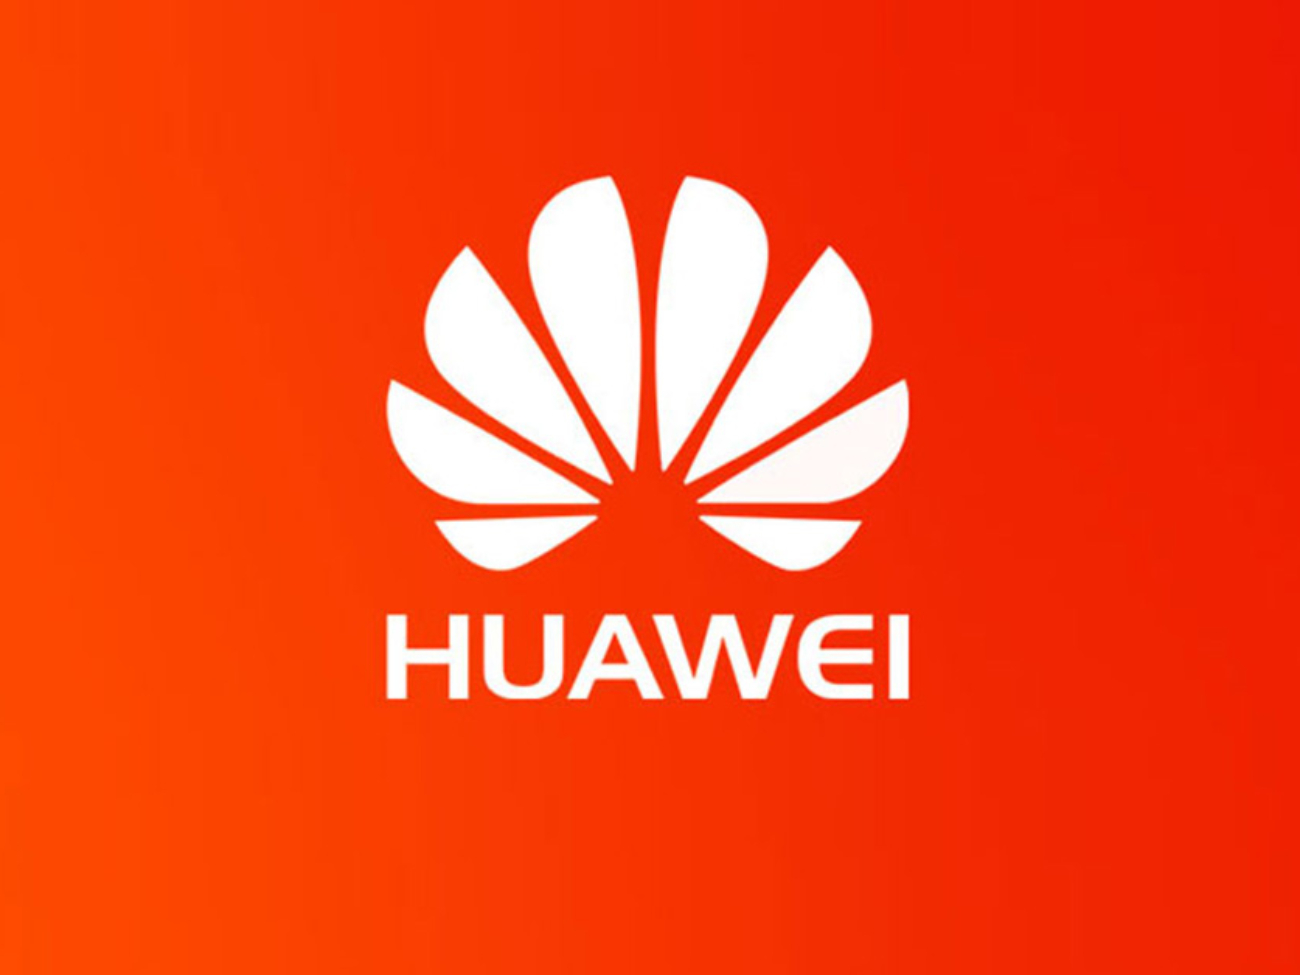 Huawei Statement_Google Suspending Some Business with Huawei